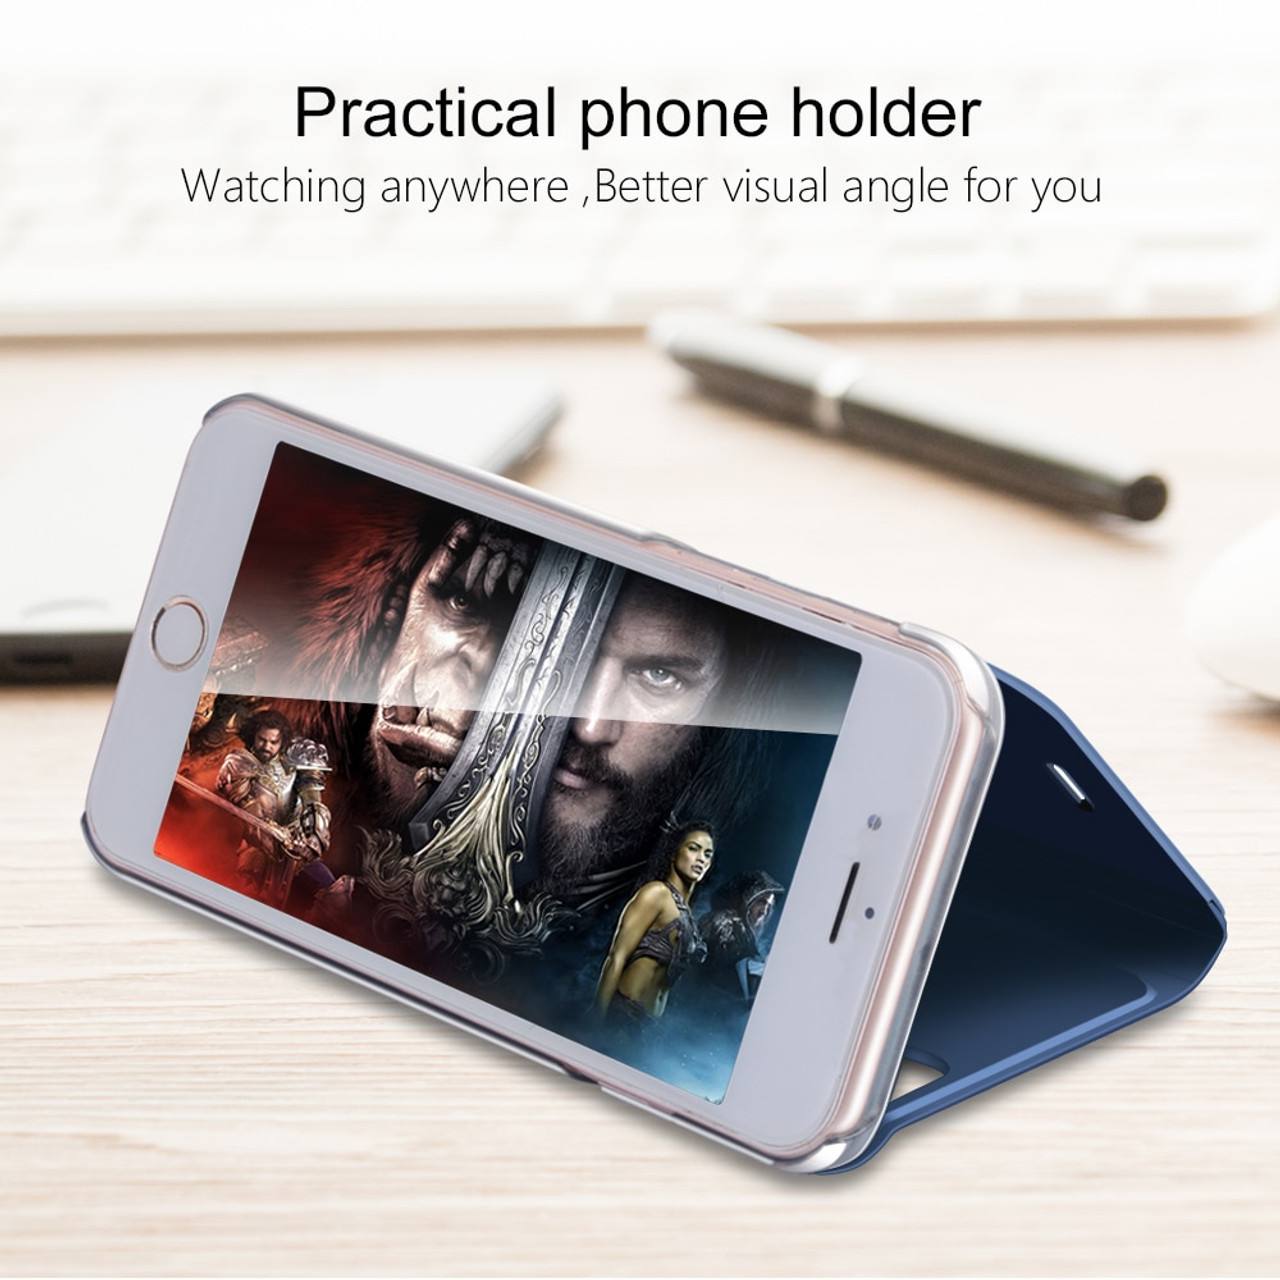 finest selection 5b711 84083 Lamorniea Mirror Case For iPhone 9 Plus Cover For Samsung Note 9 Plating  Flip Case For Oneplus 6 View Case For iPhone X 9 Plus